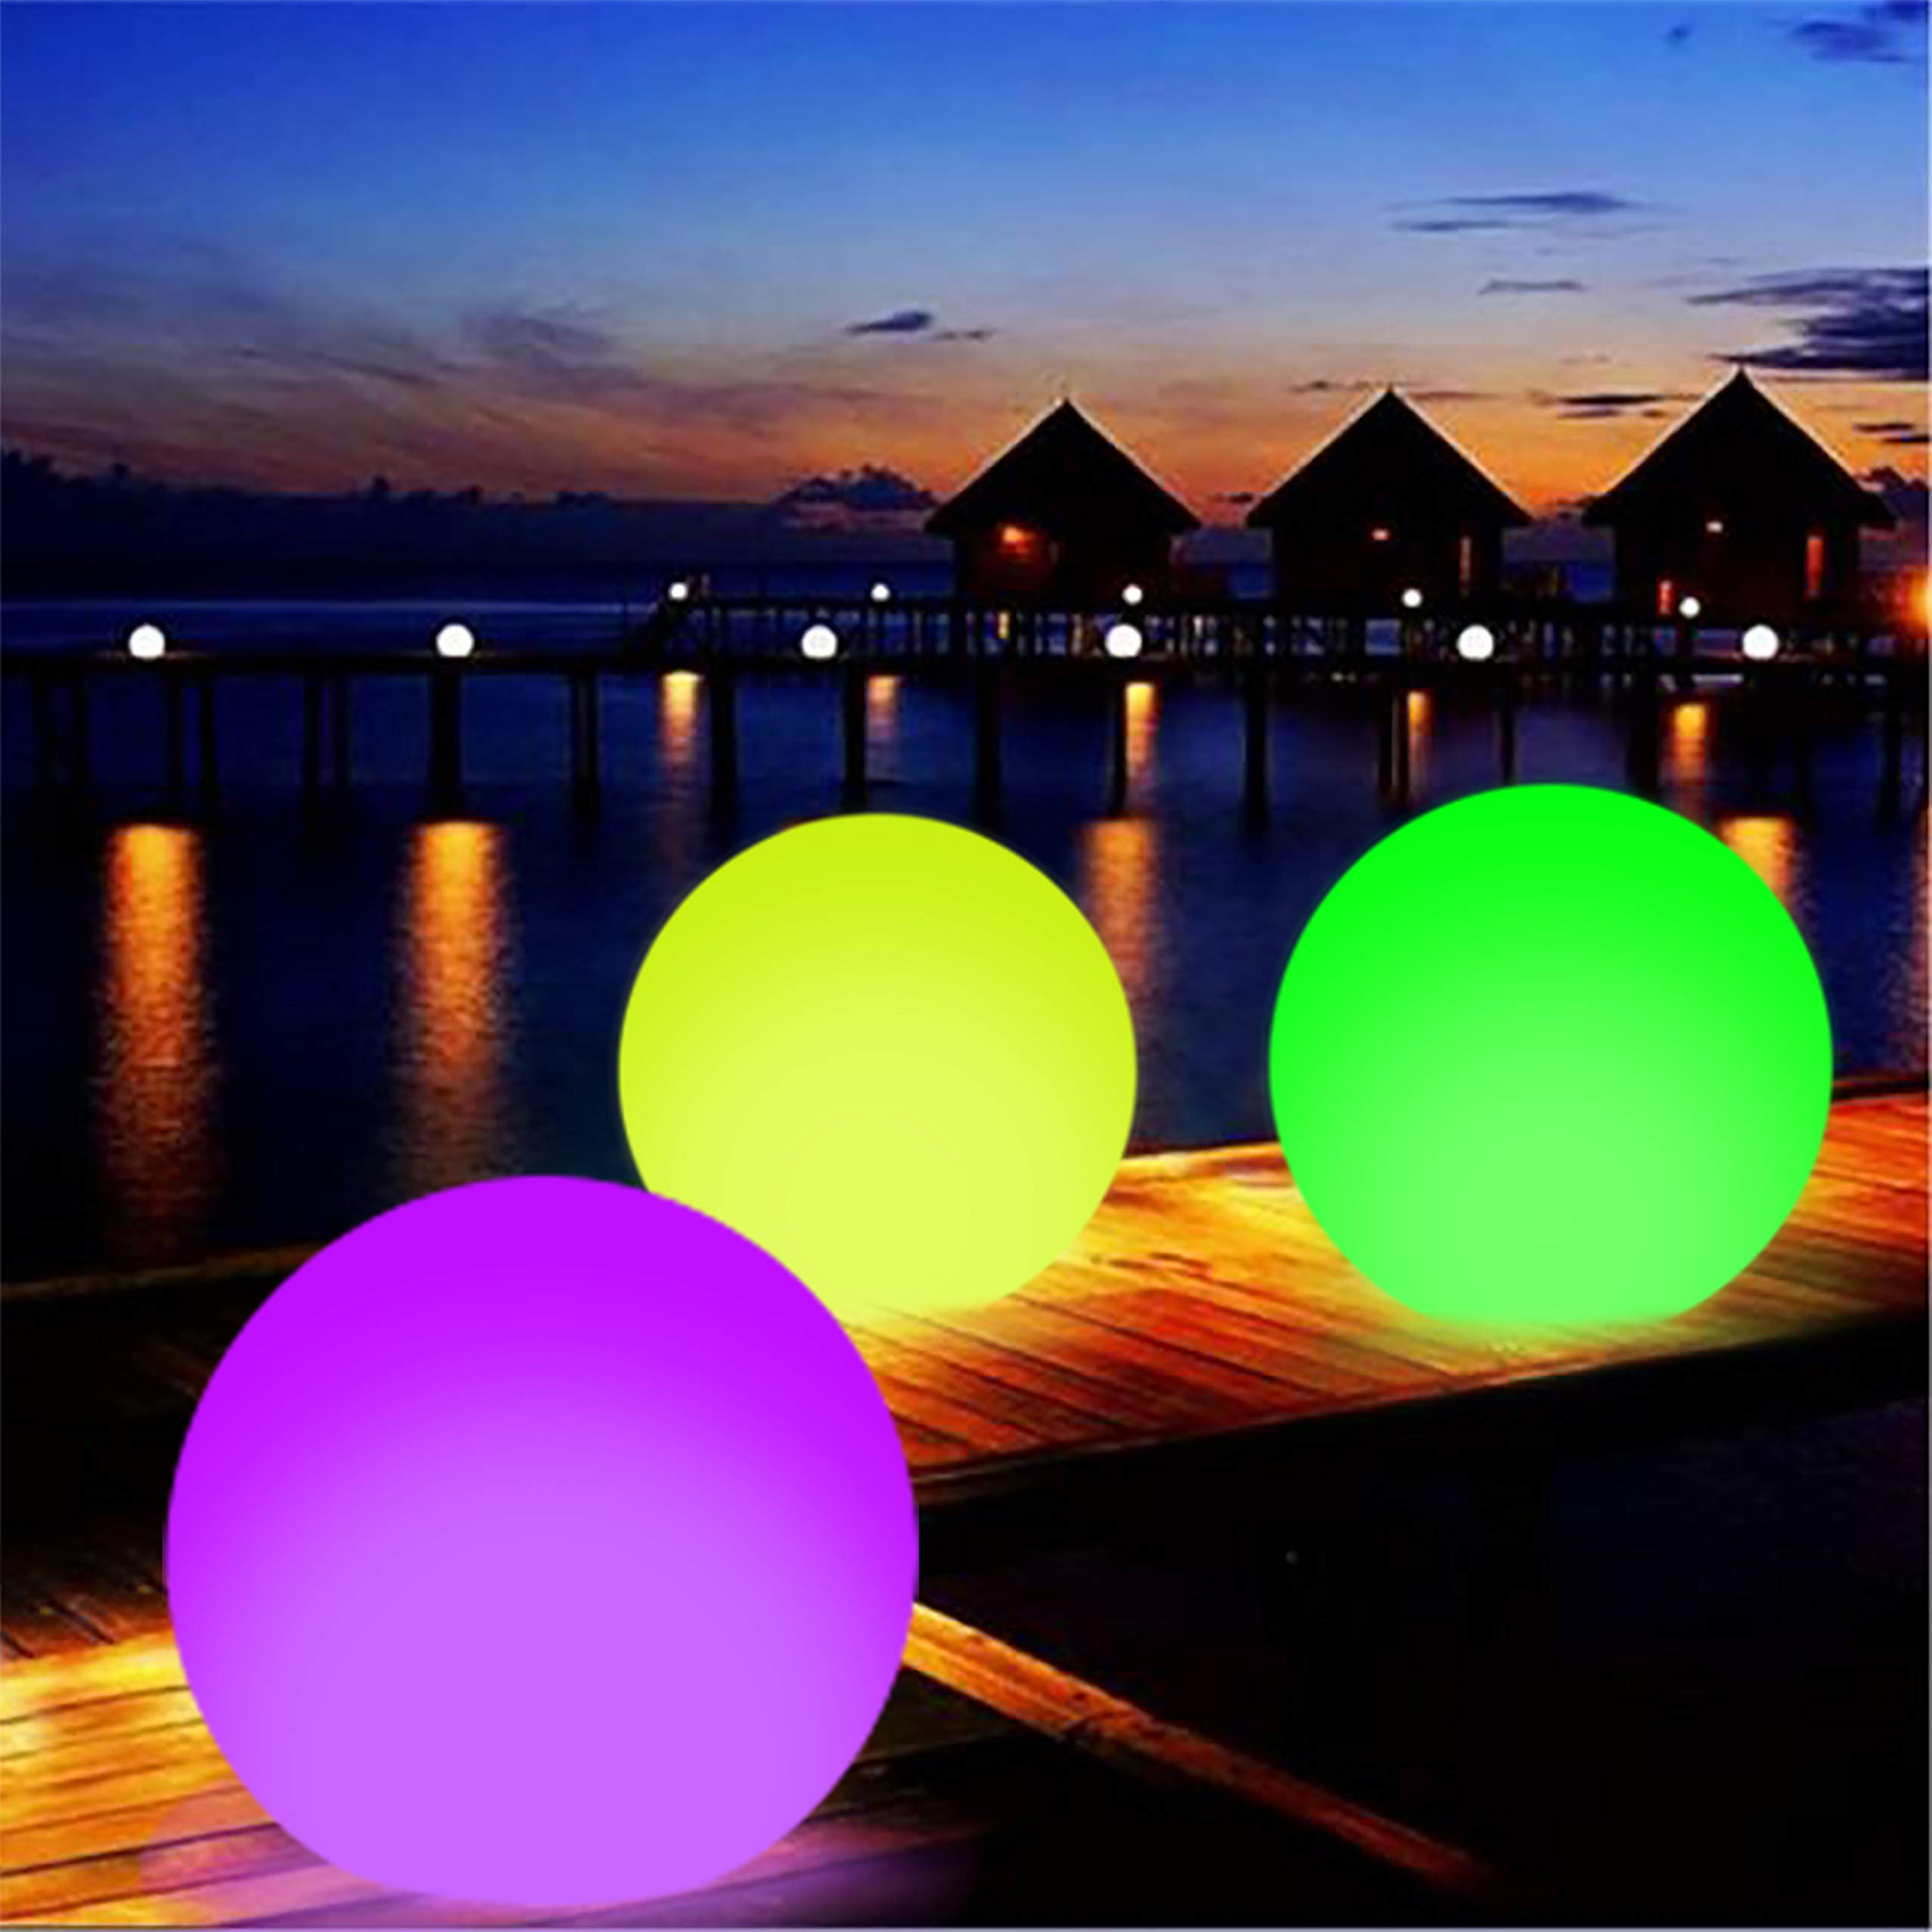 Party Decorations LED Pool Lights Glow Beach Balls Inflatable Floating Waterproof Light Up 16-Inch with Colors Changing Garden, Wedding, Lawn, Patio, Xmas, Room Decor (1 PCS) by Likitoa